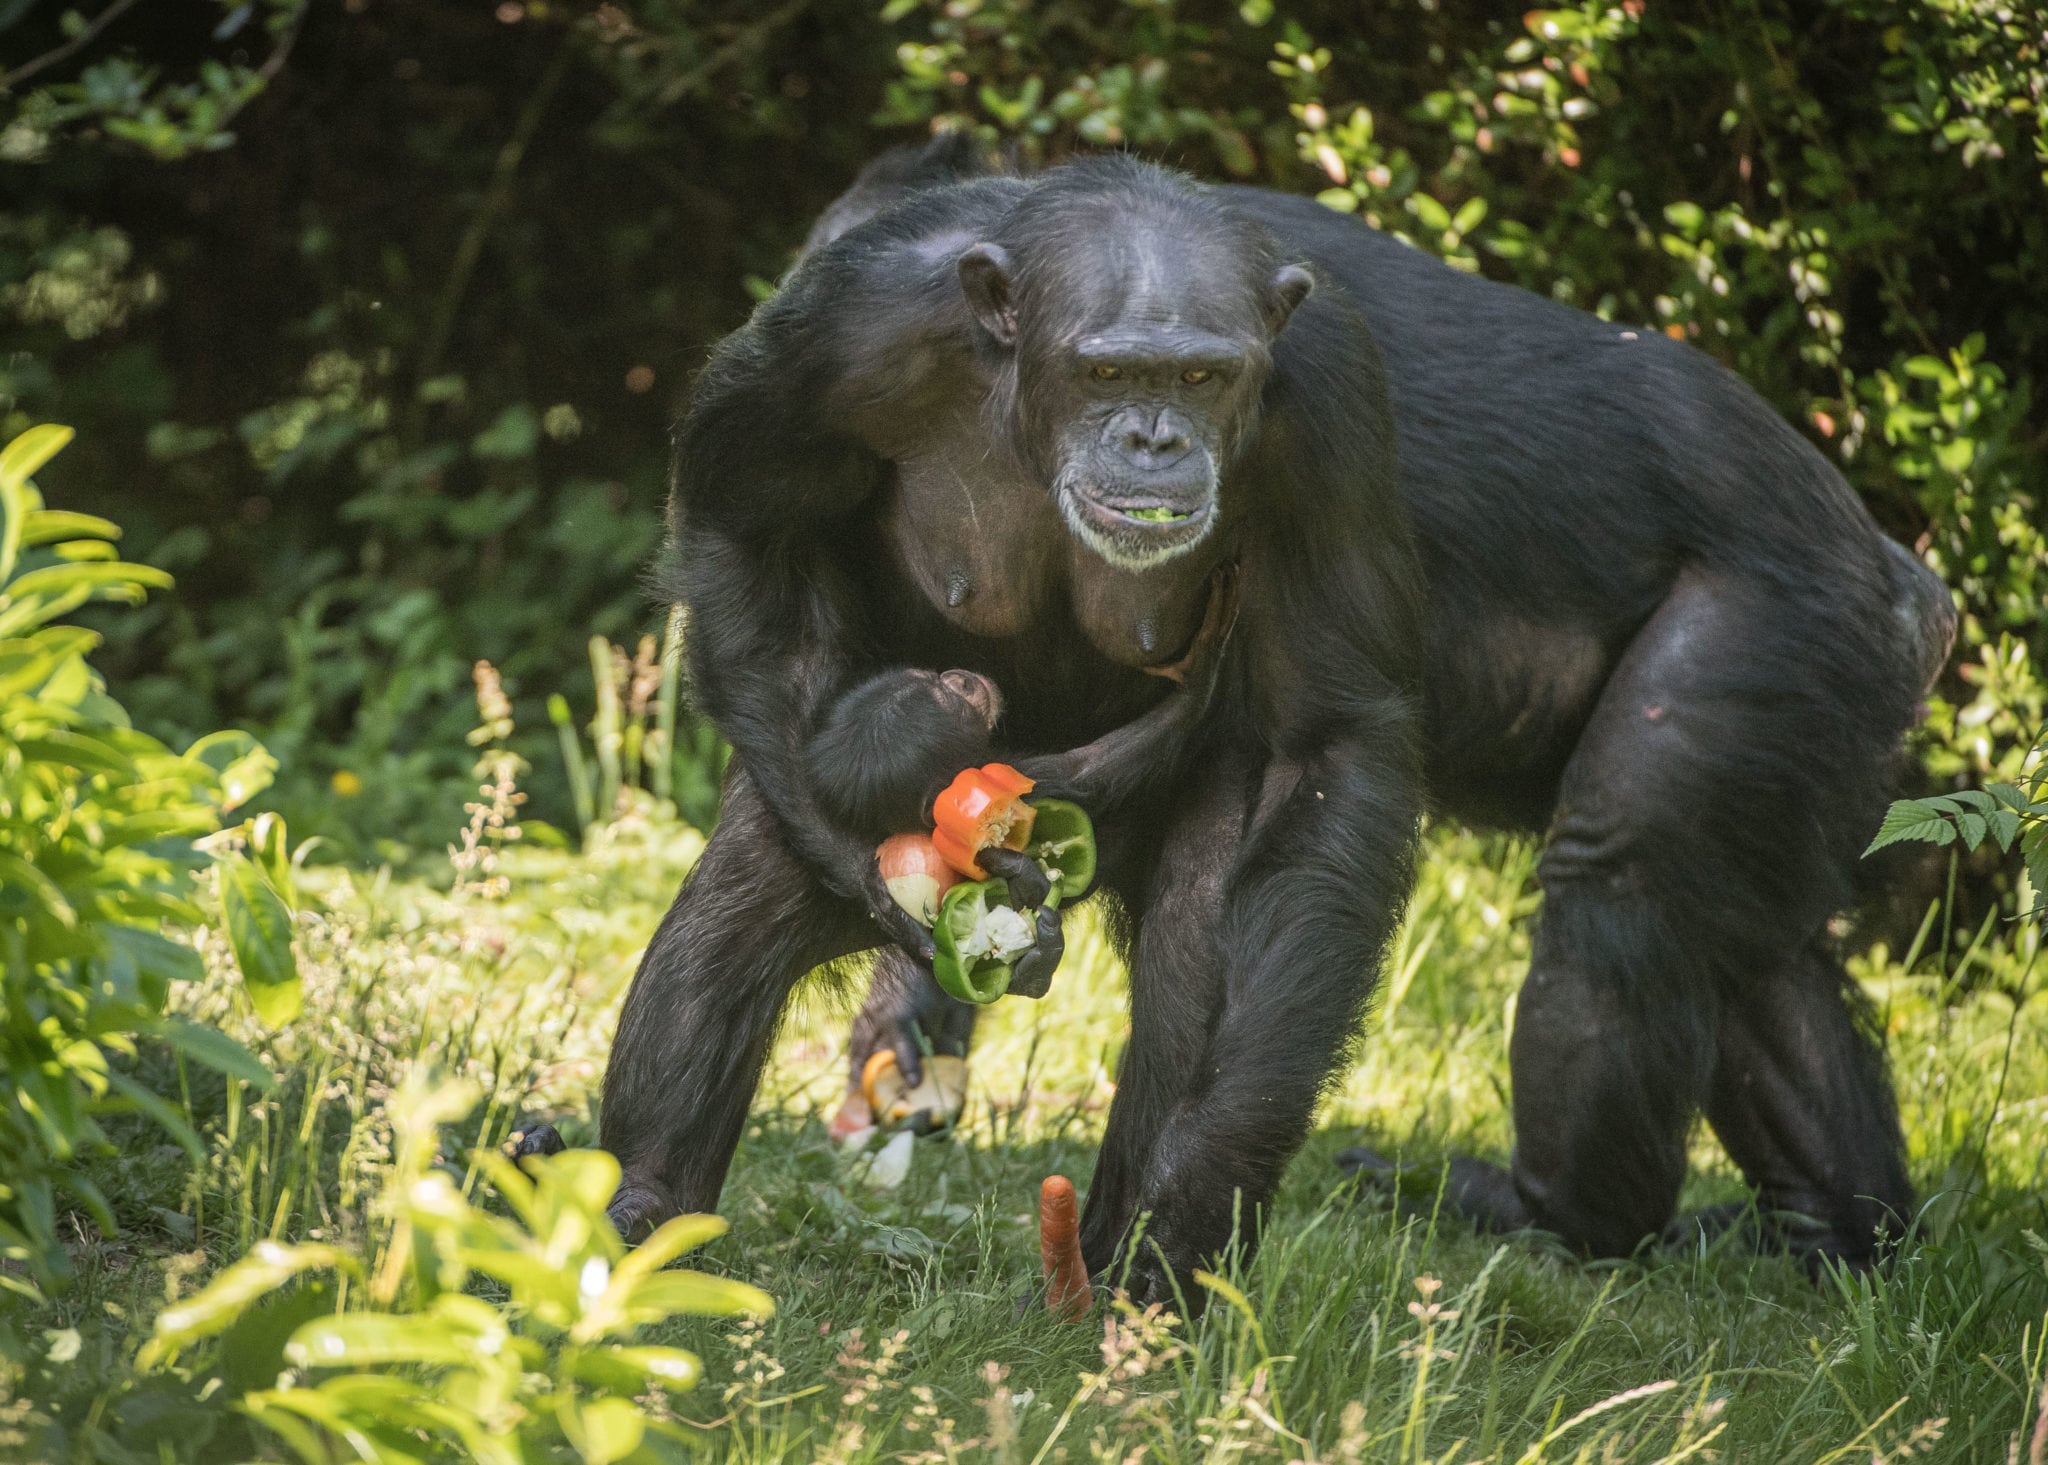 First chimpanzee to be born in nearly a decade at Chester Zoo